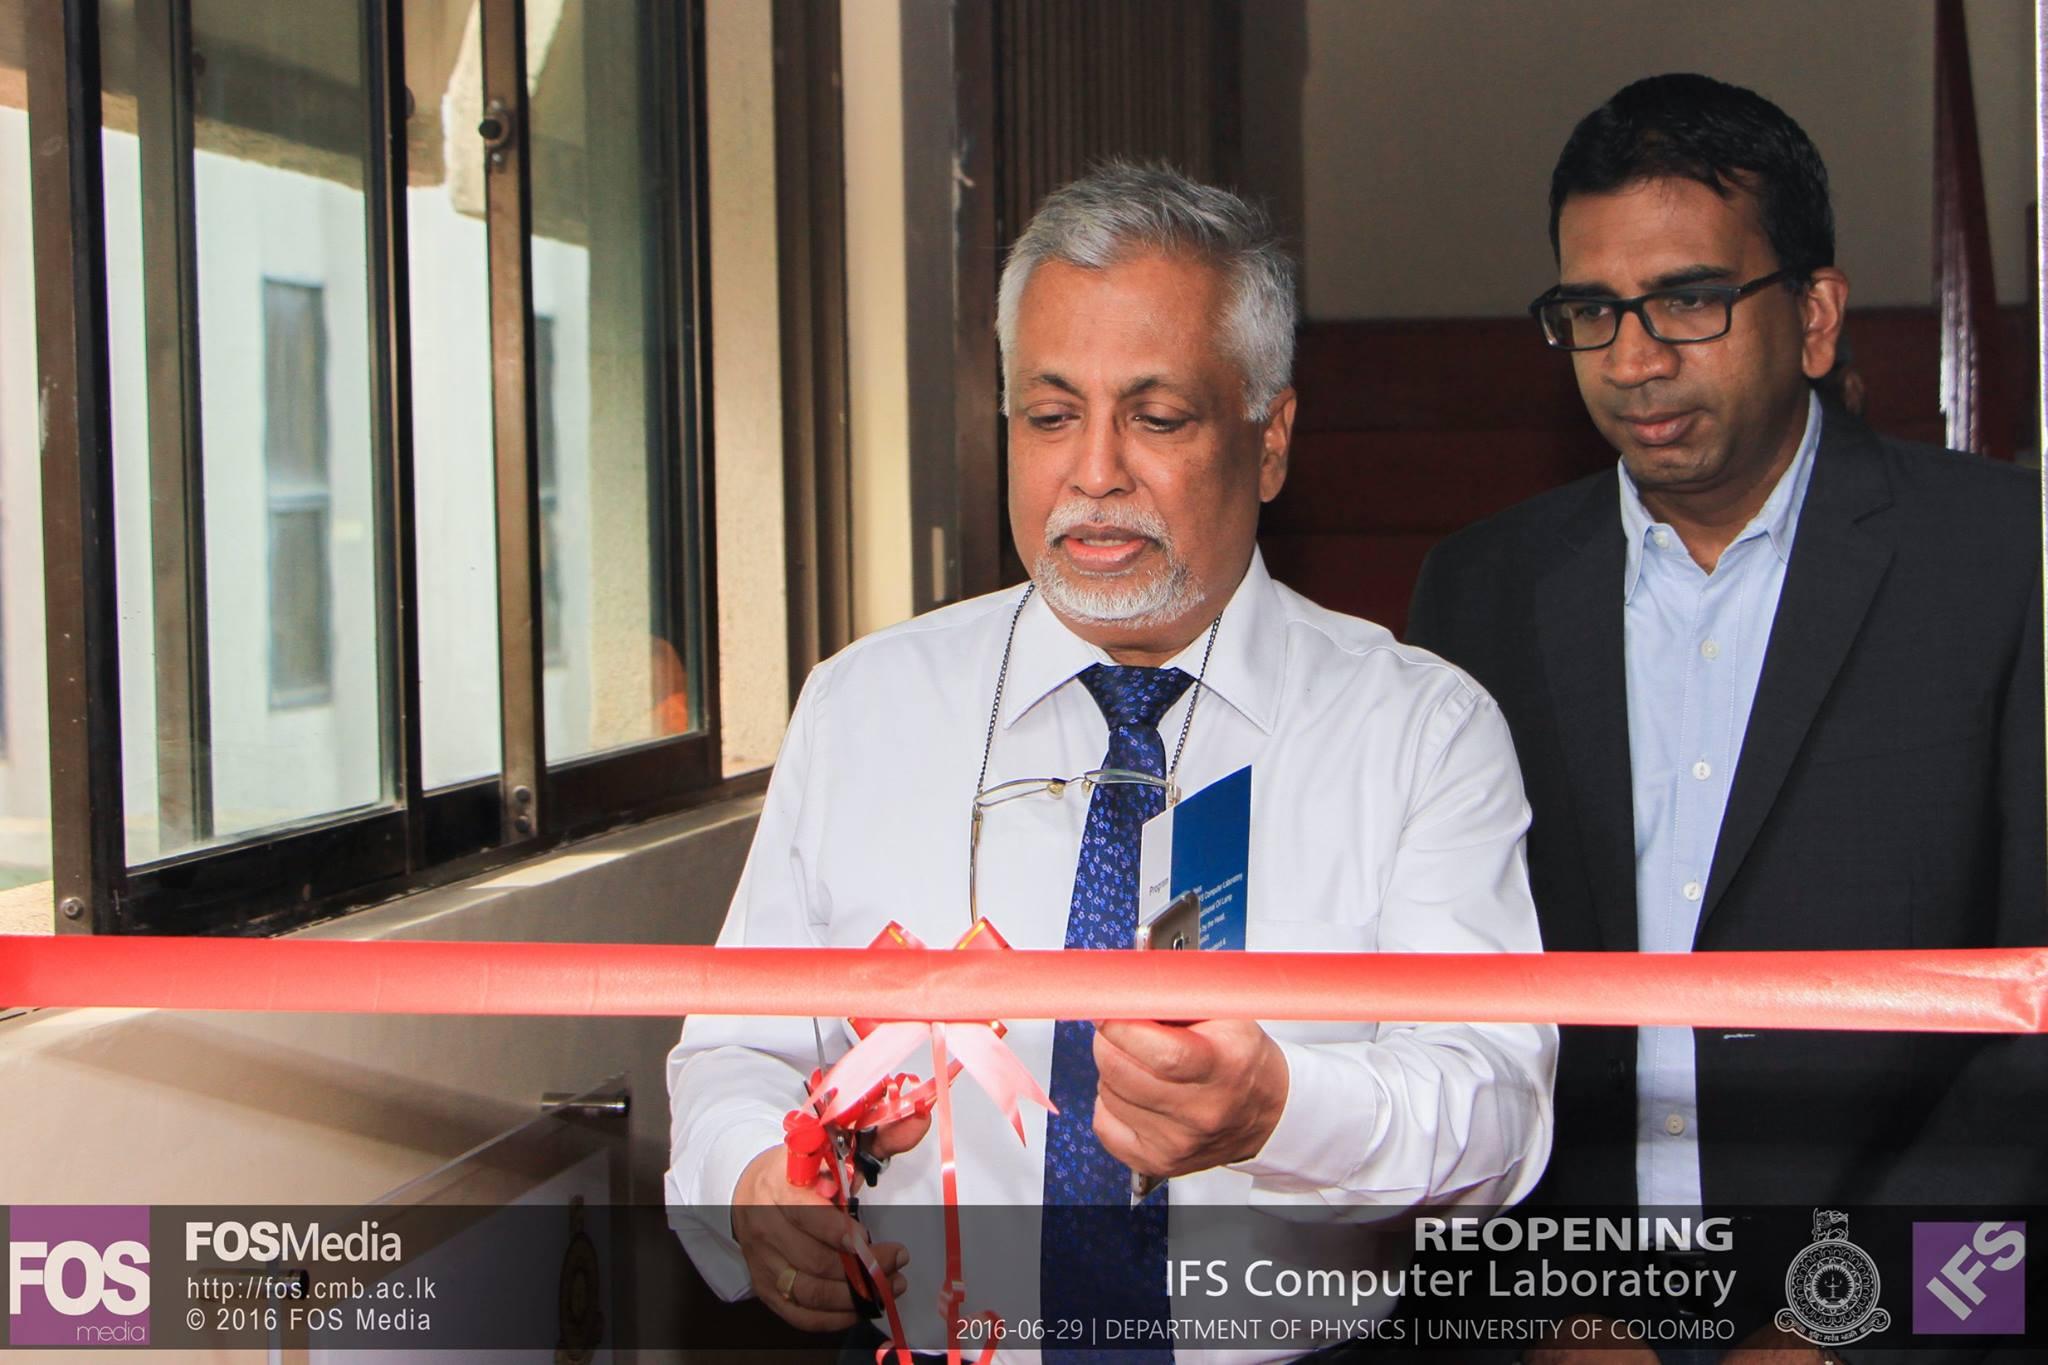 Opening of the IFS Computer Laboratory and Reading room